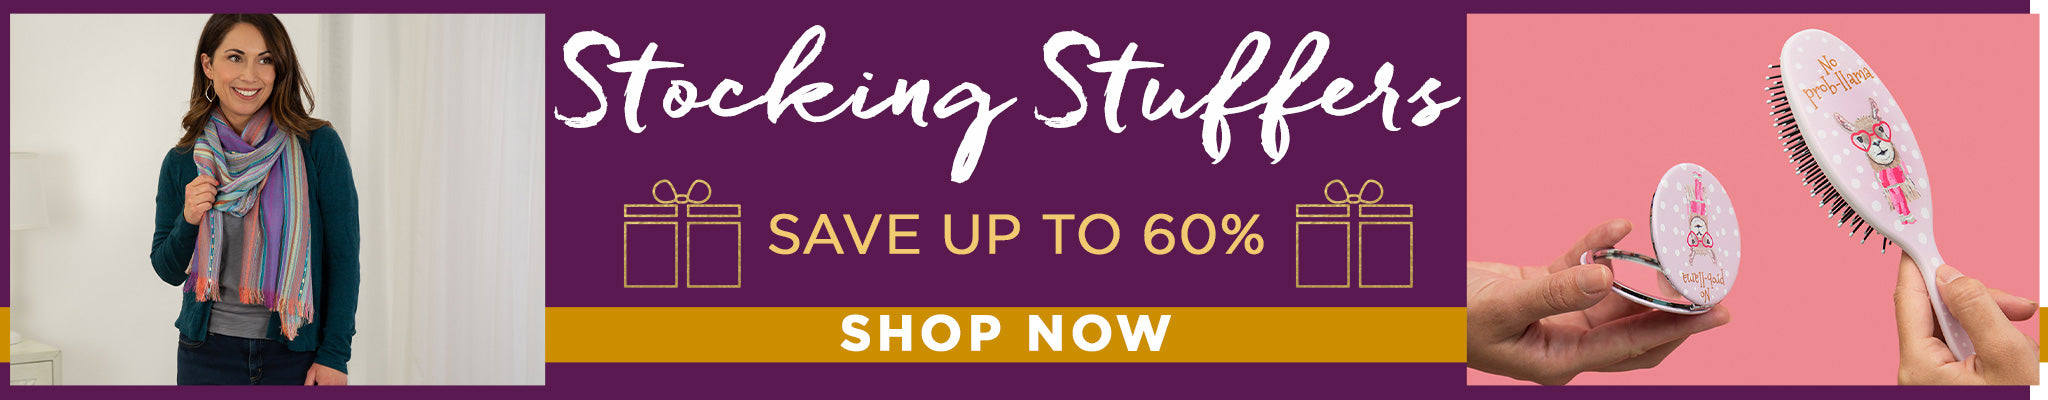 Stocking Stuffers Sale